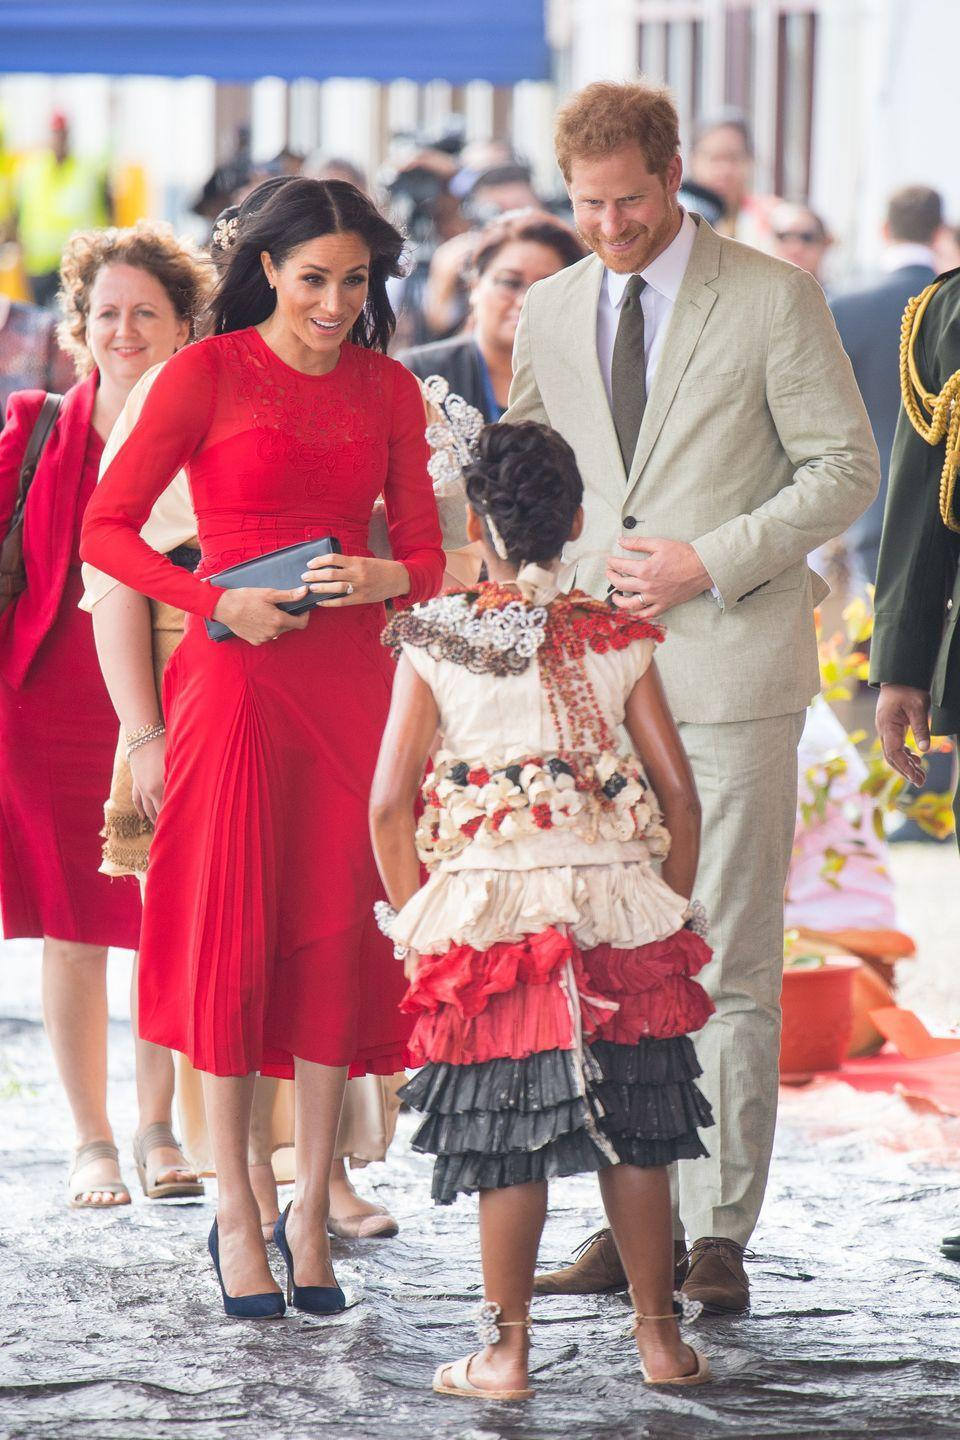 <p>A young girl greets the Duke and Duchess of Sussex as they arrive at Fua'amotu Airport in Nuku'Alofa, Tonga. </p>